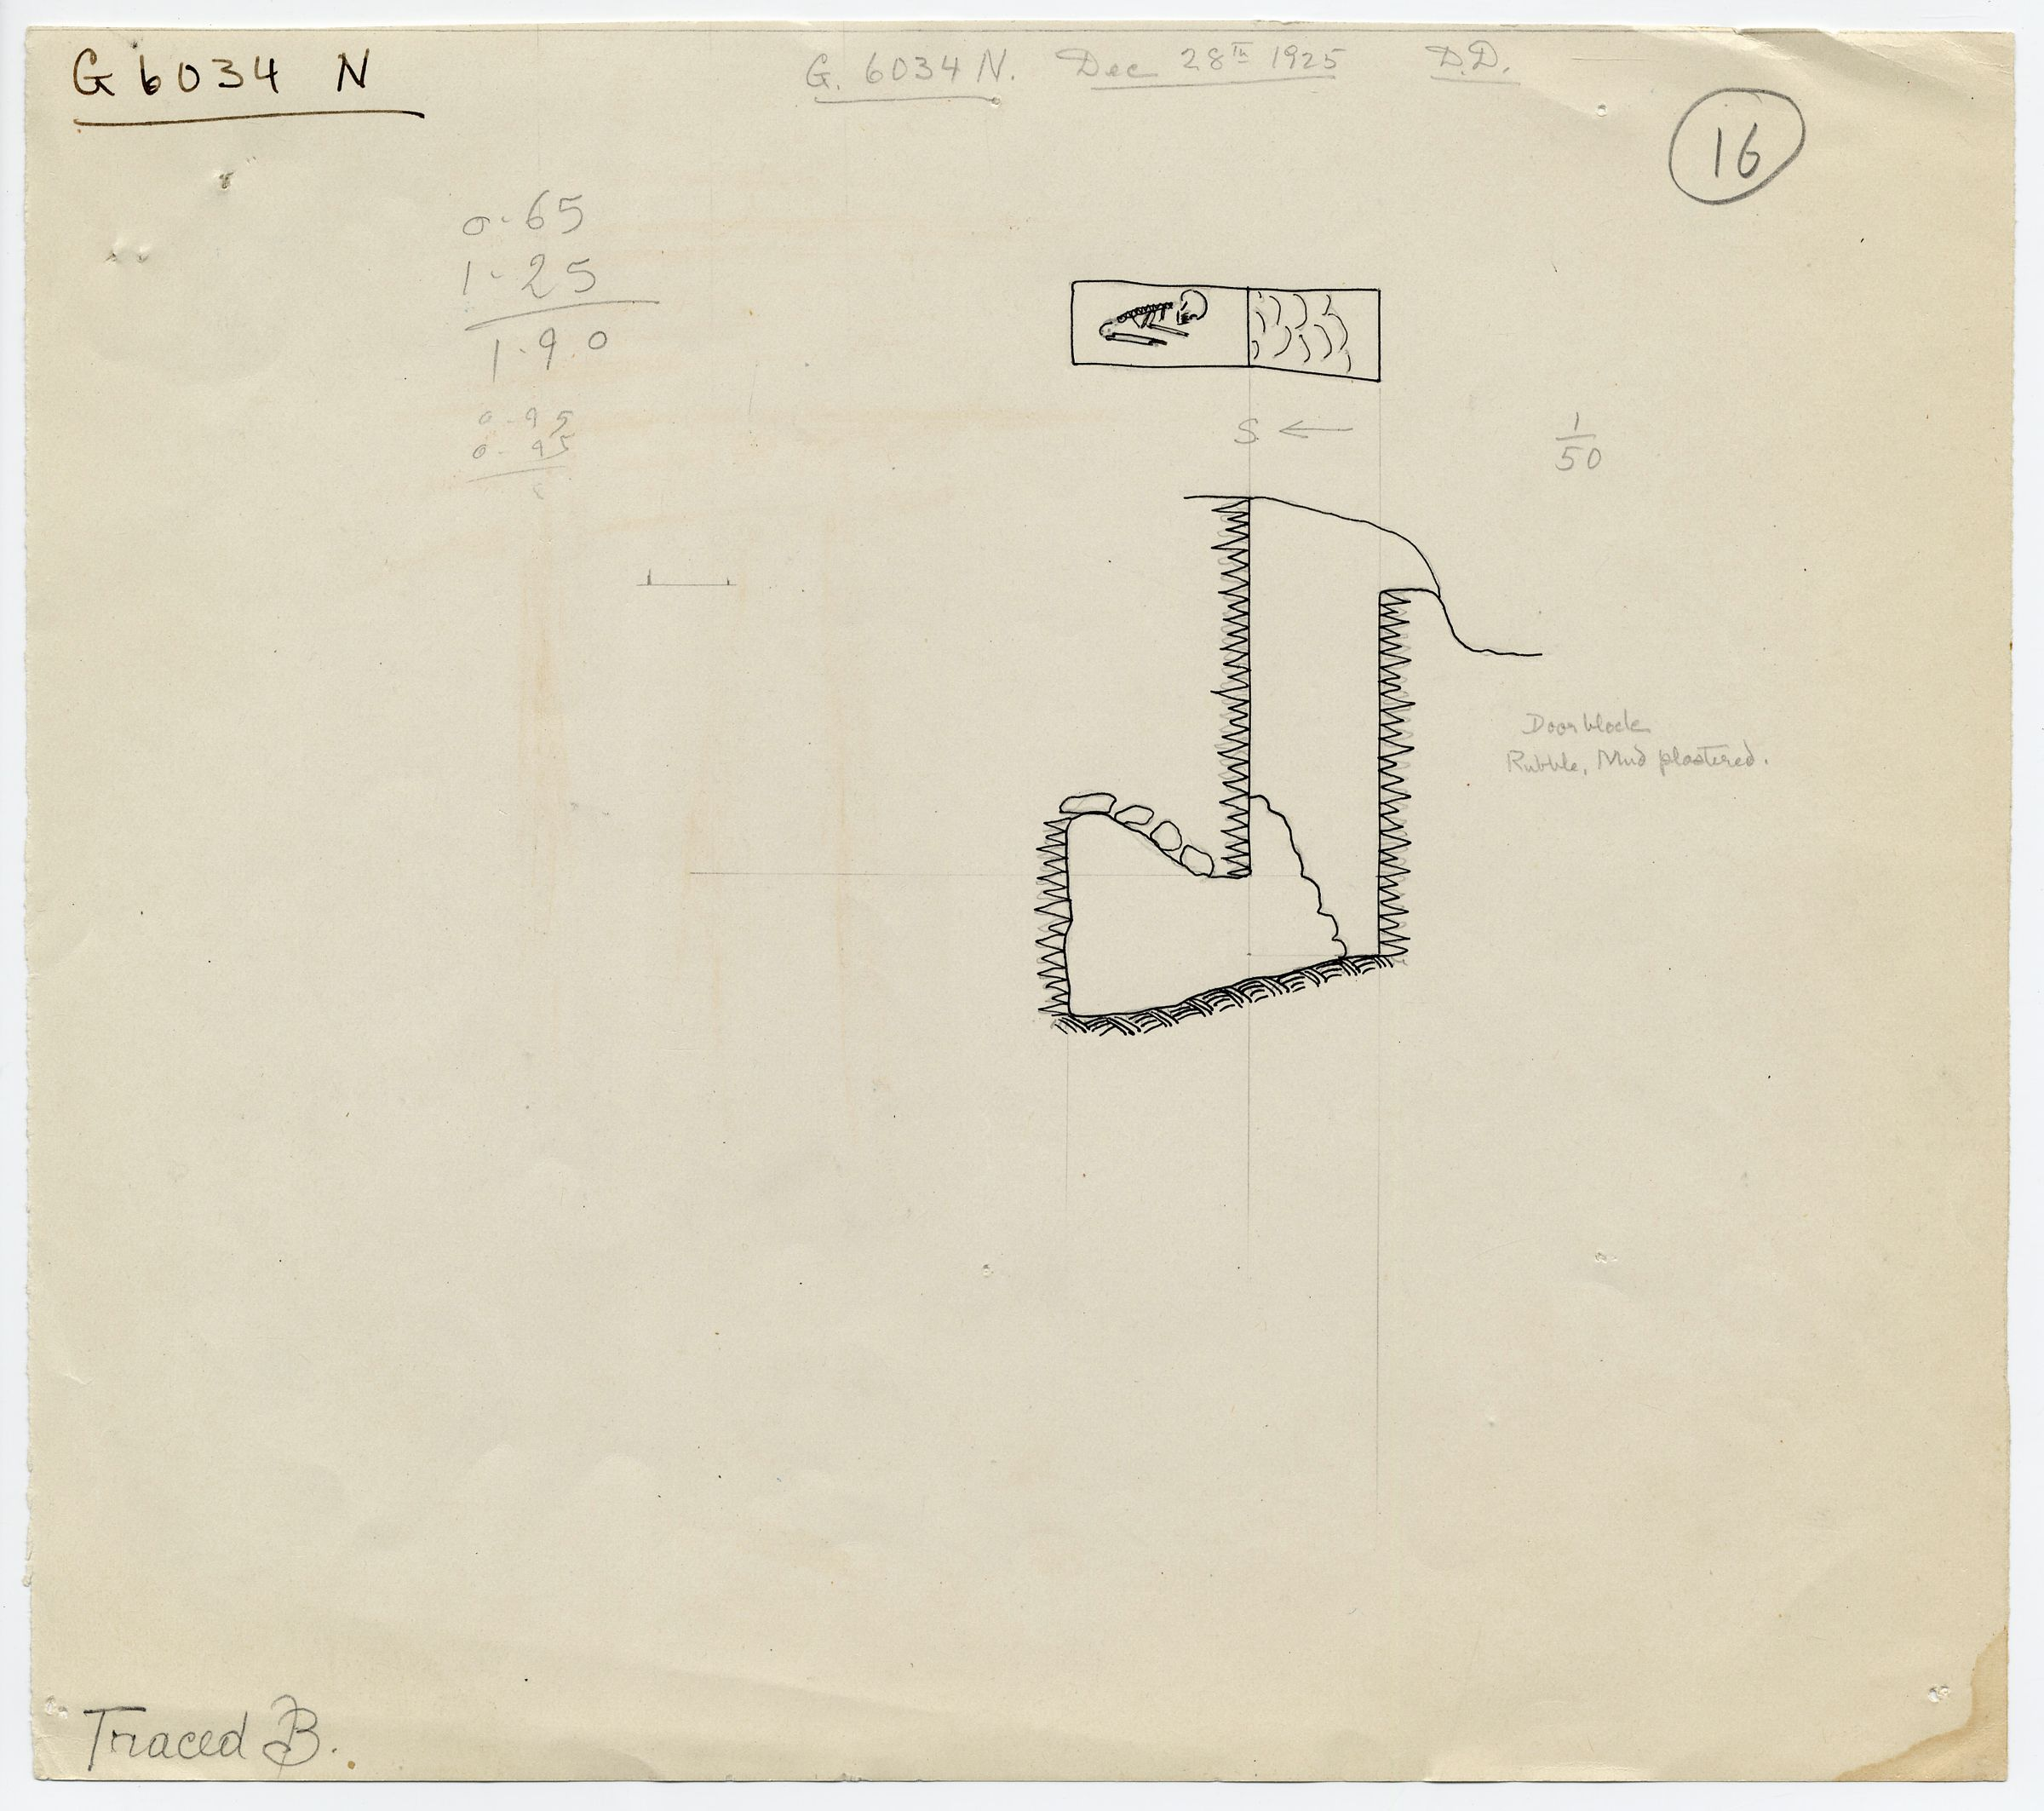 Maps and plans: G 6034, Shaft N